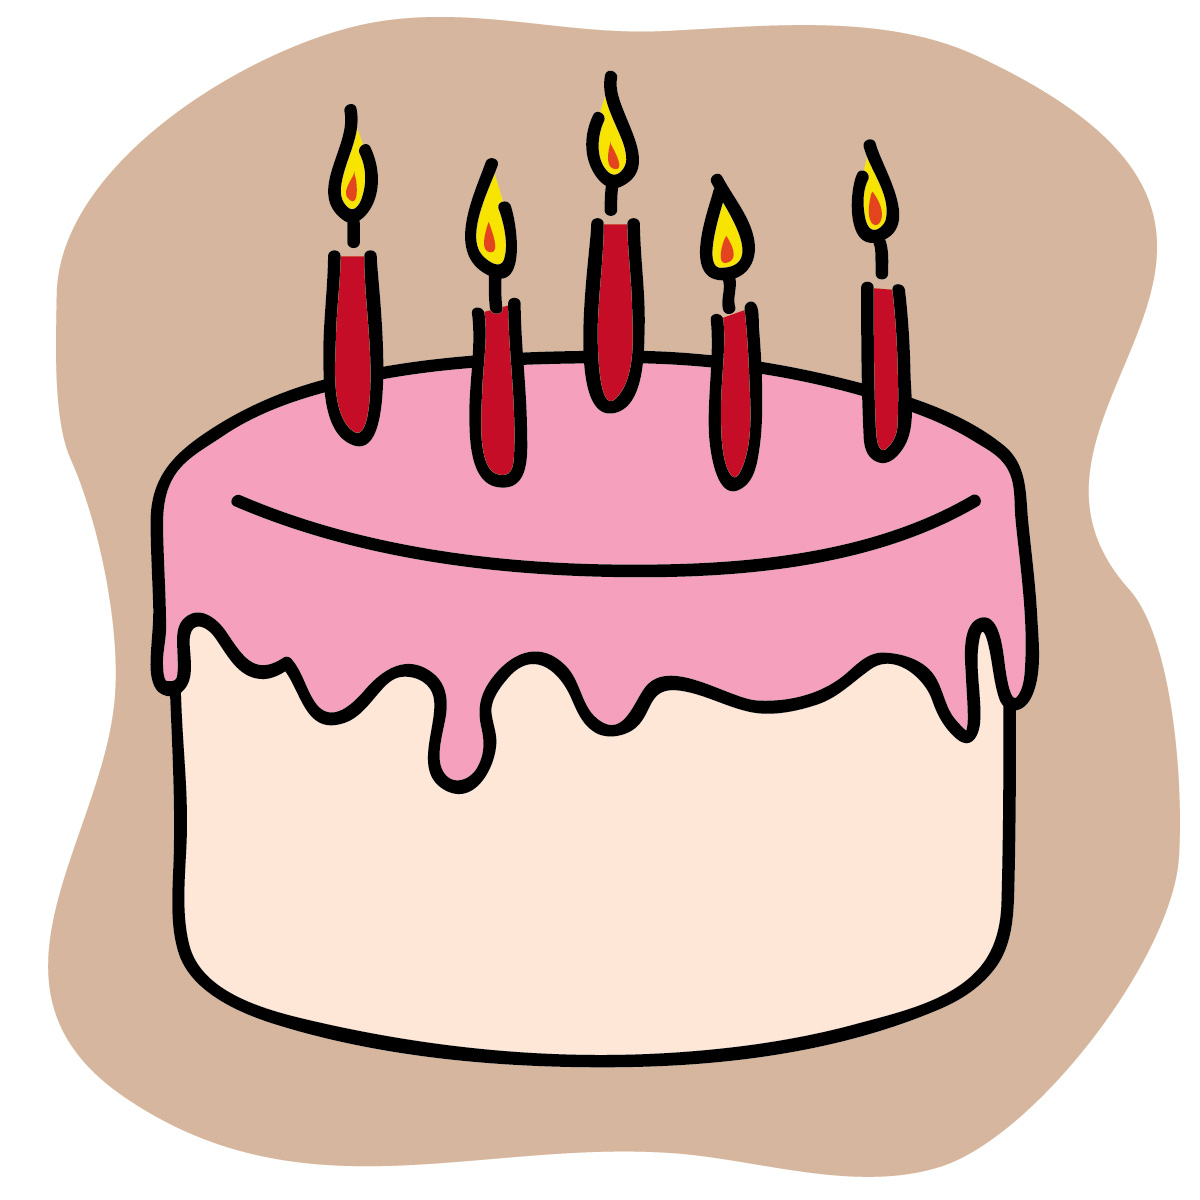 hight resolution of free birthday cake clip art clipart library free clipart images